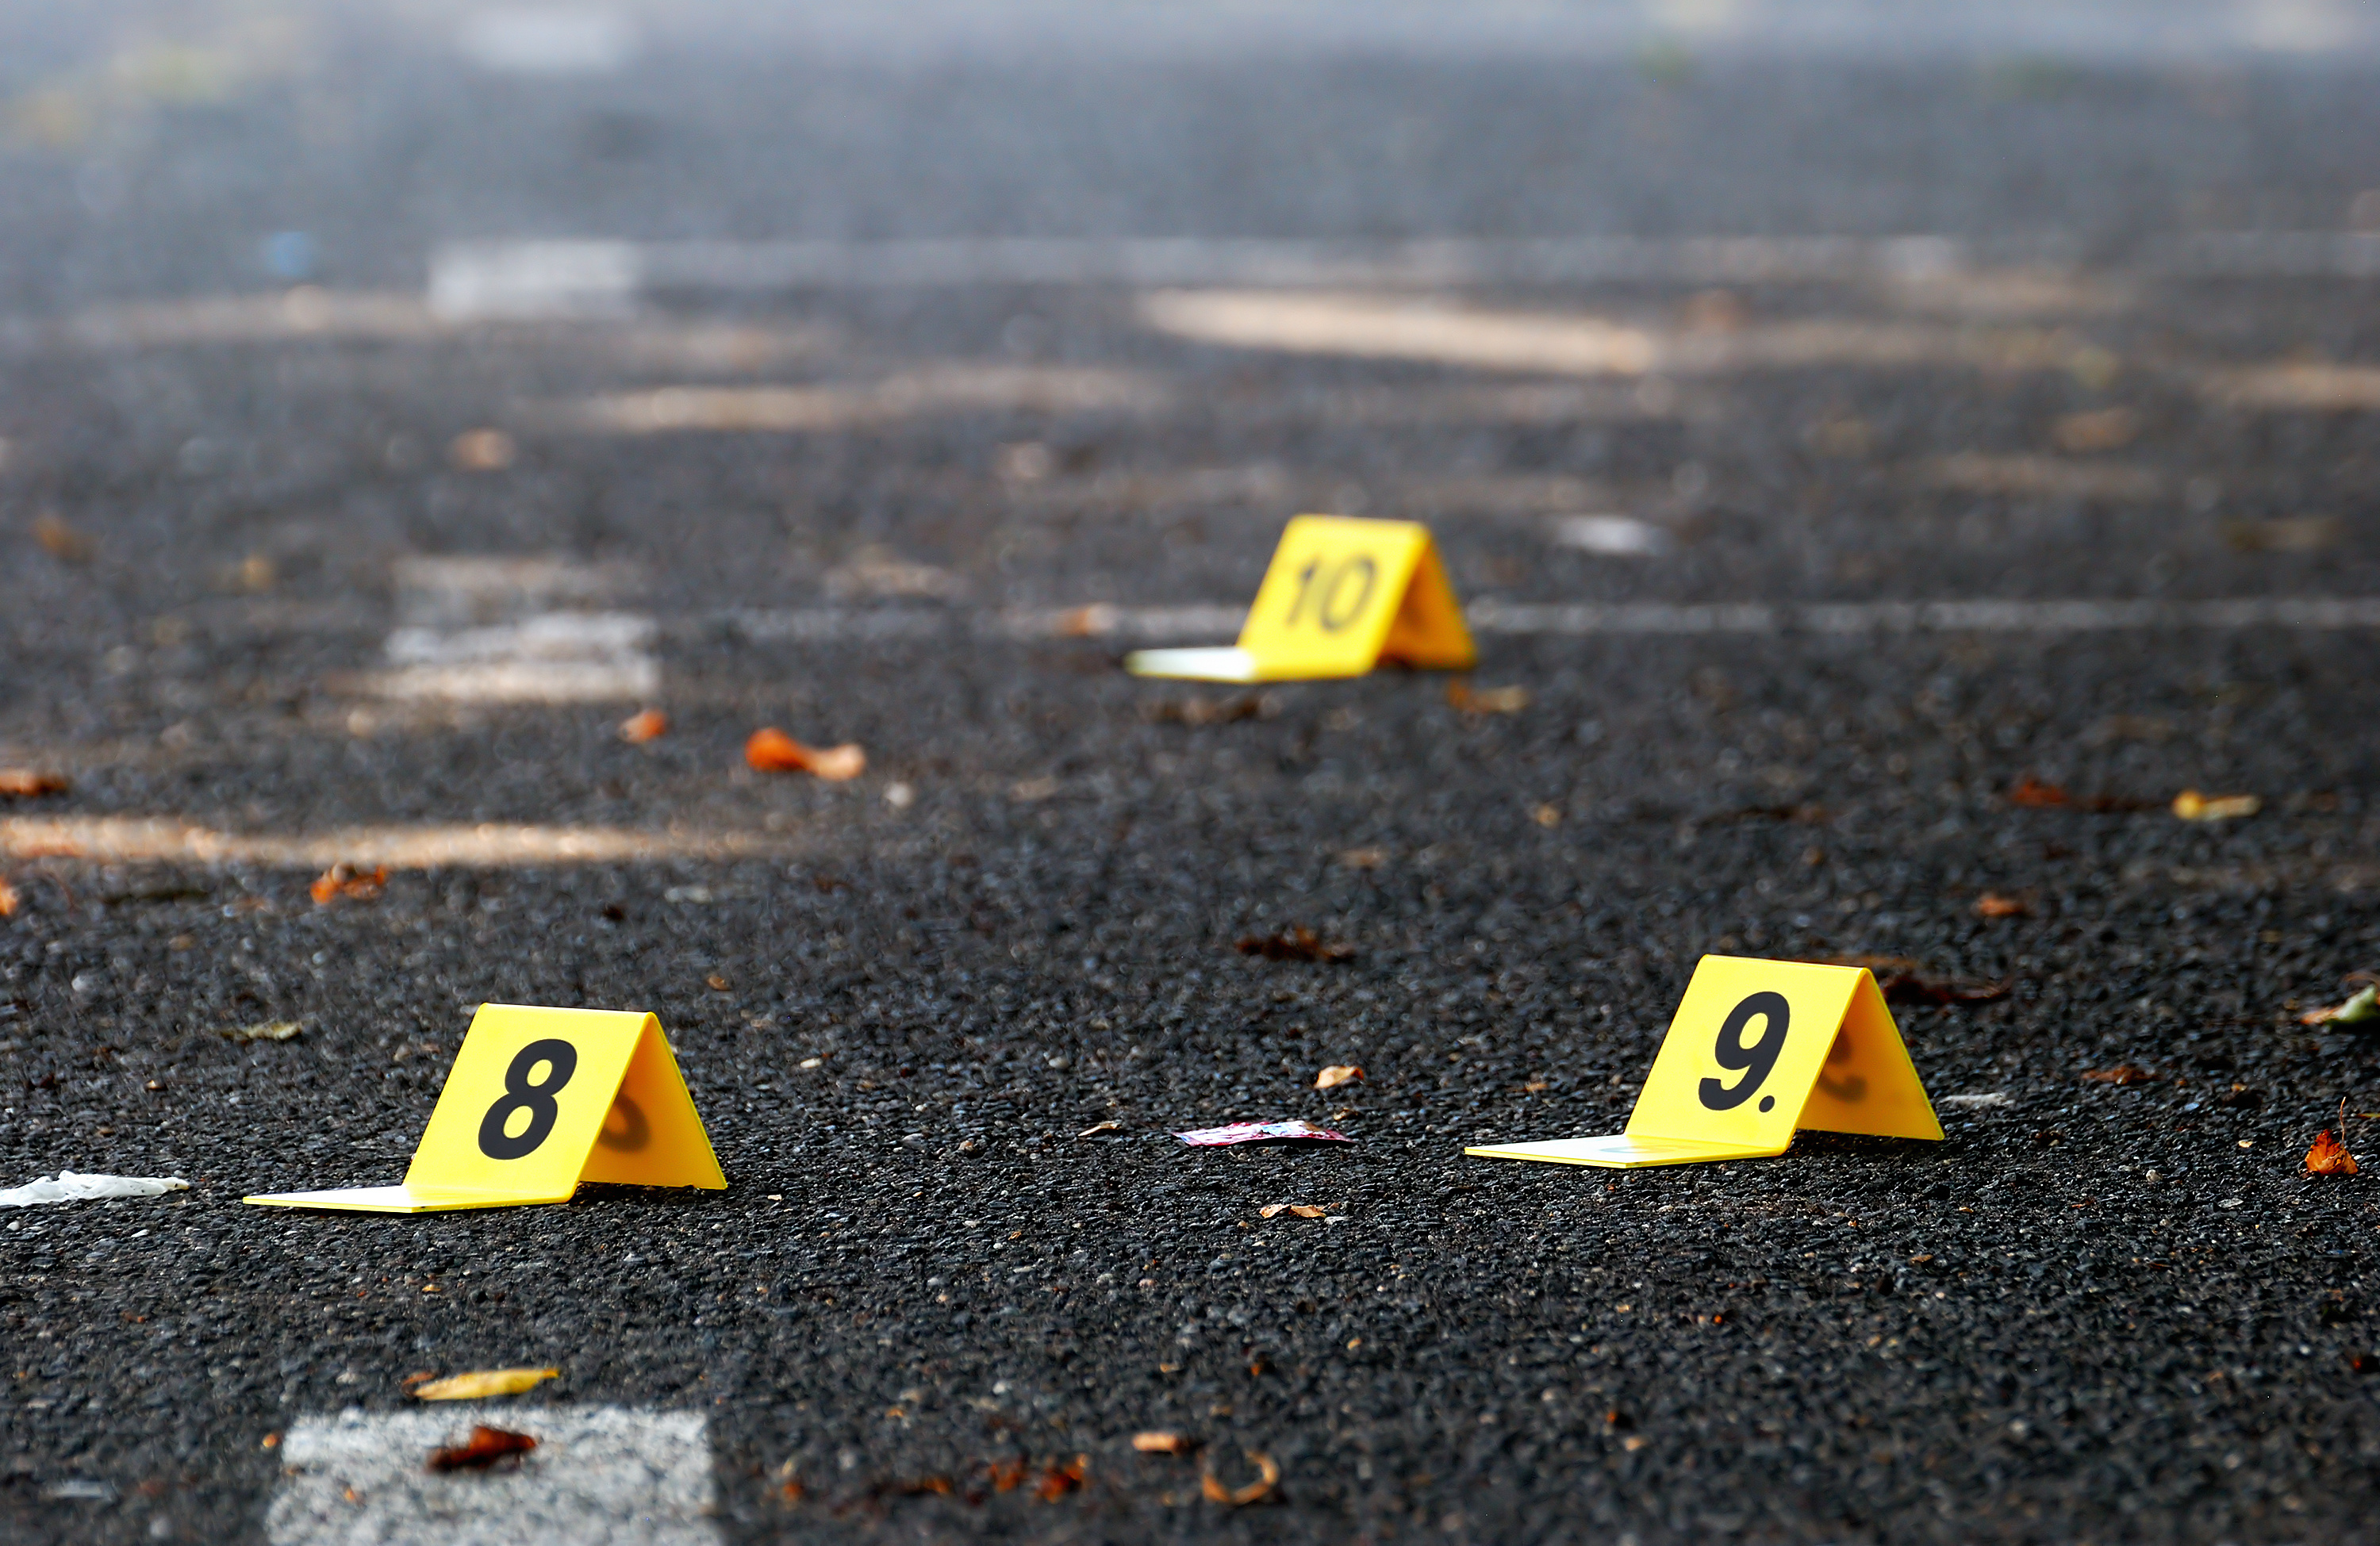 A man was fatally shot in Austin on the West Side.